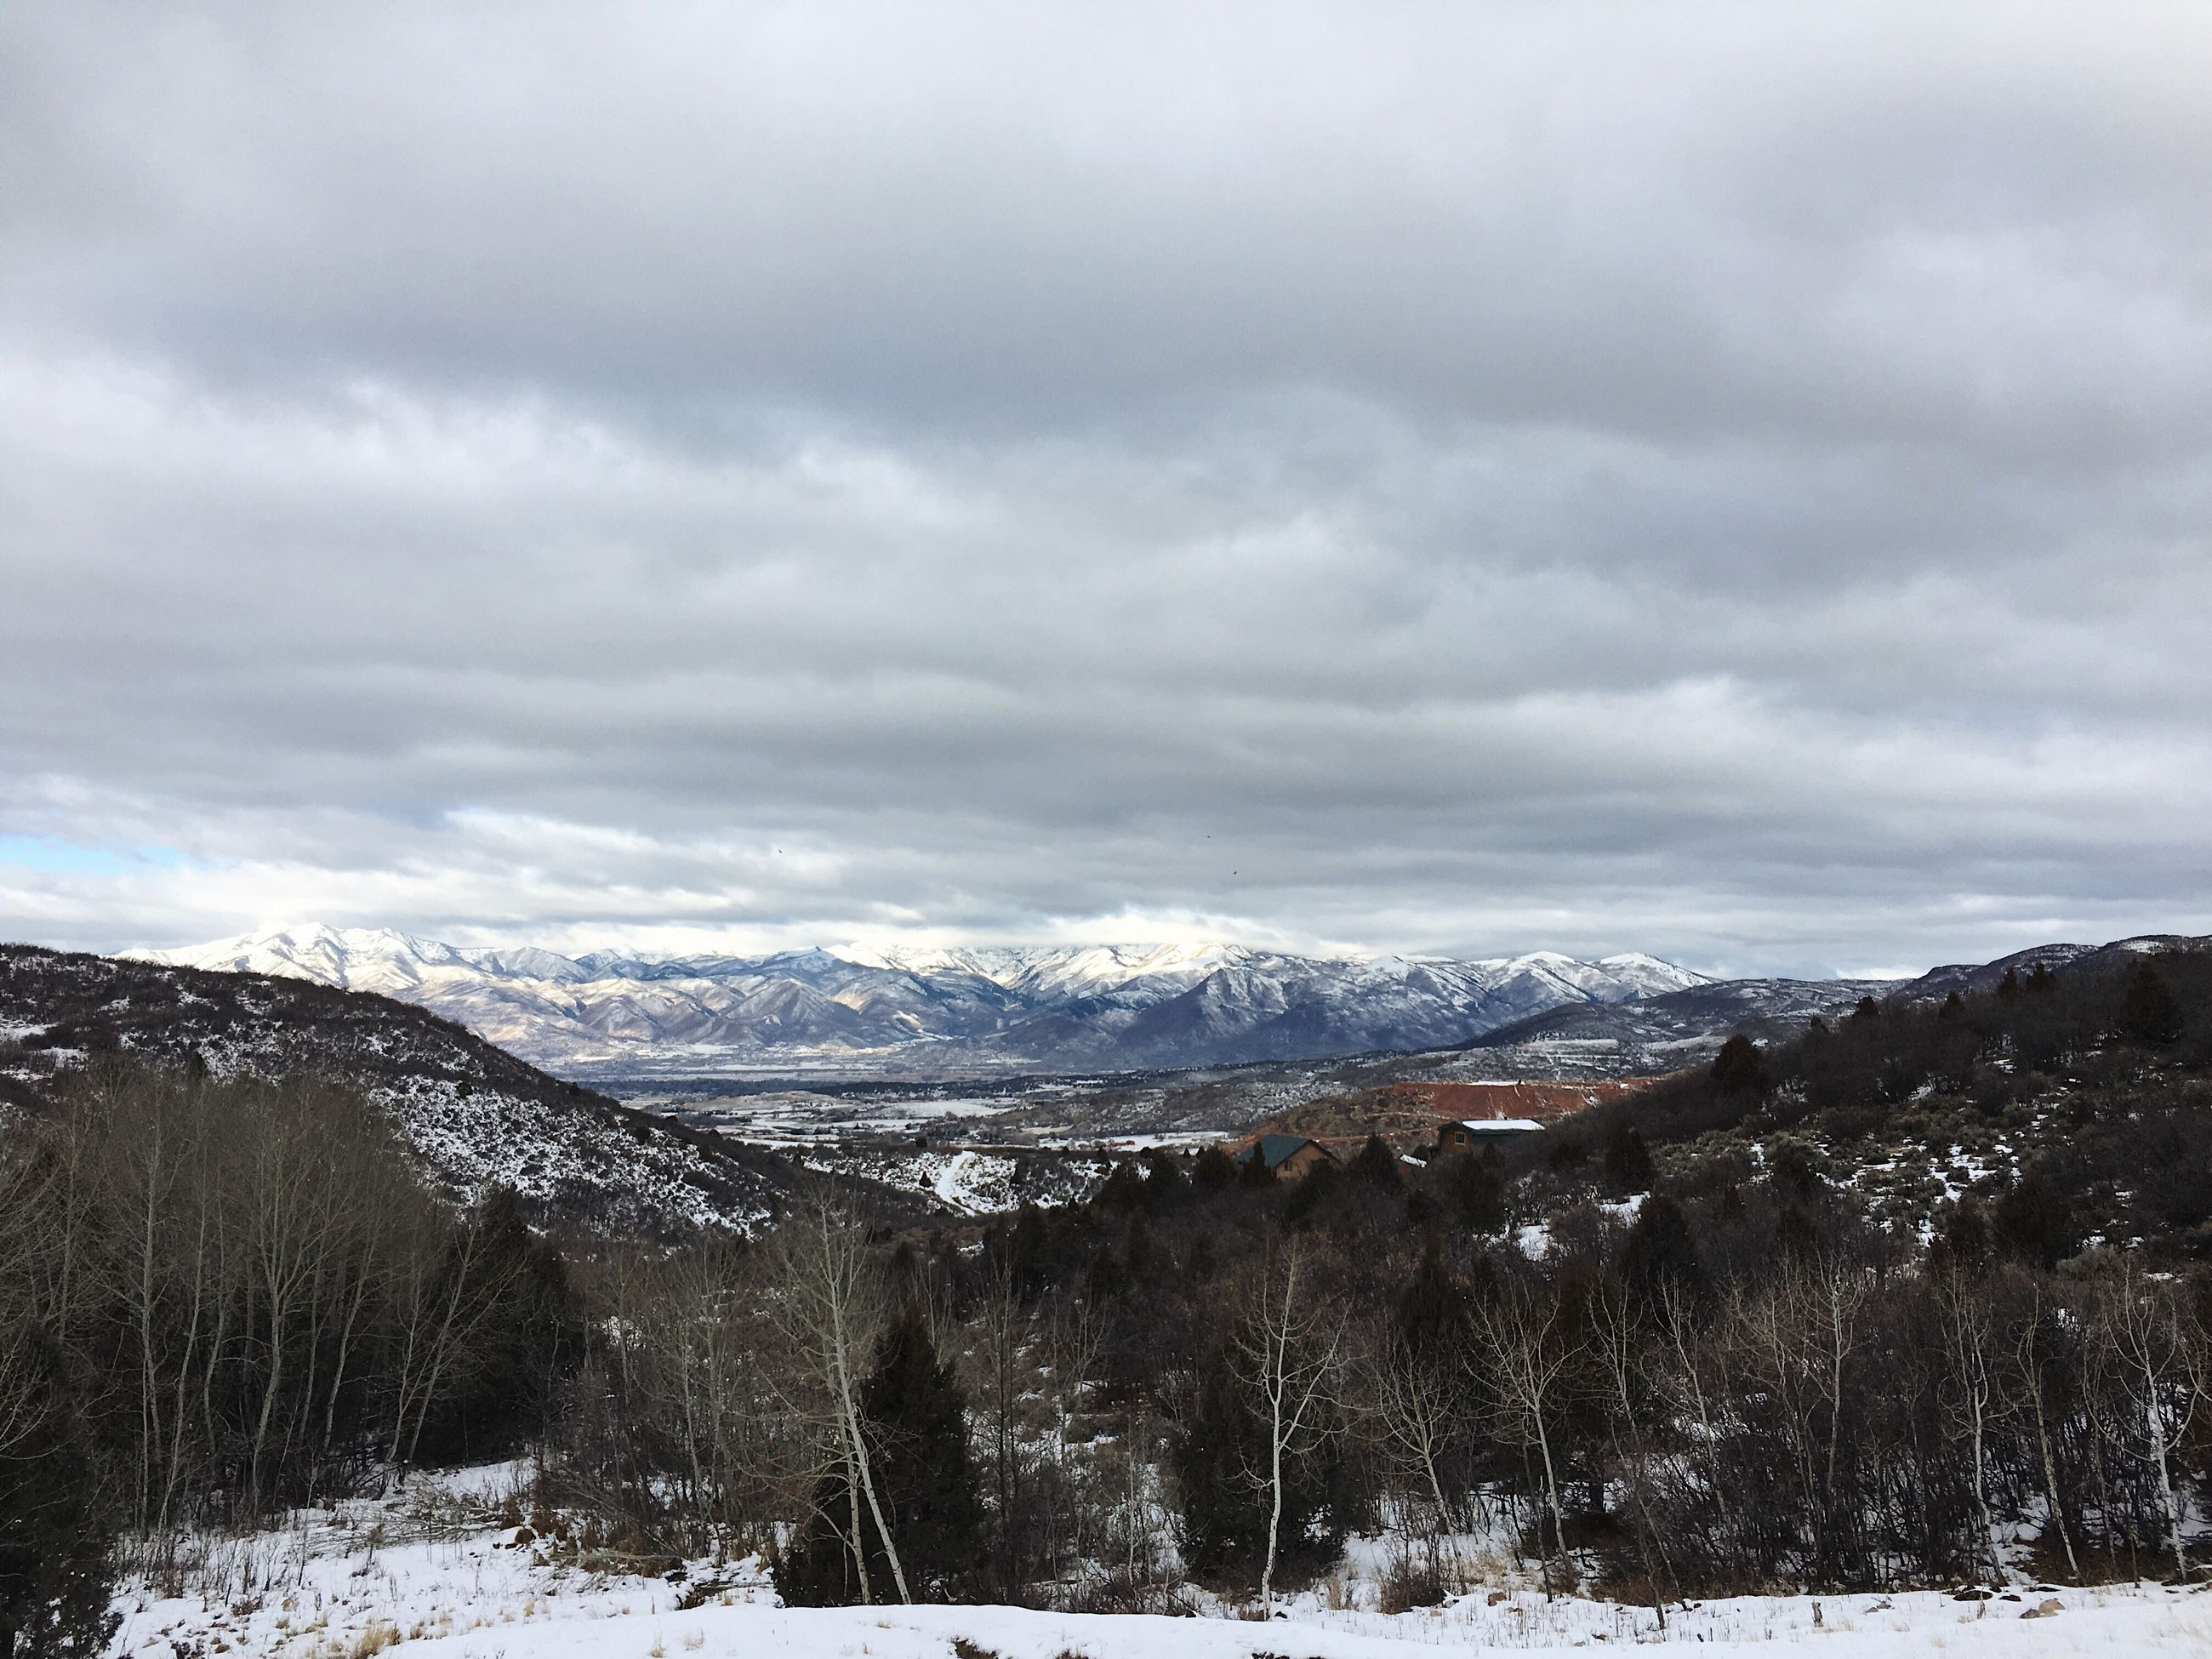 snow, cold temperature, winter, nature, weather, beauty in nature, mountain, scenics, tranquility, tranquil scene, landscape, no people, day, cloud - sky, outdoors, mountain range, sky, snowcapped mountain, tree, water